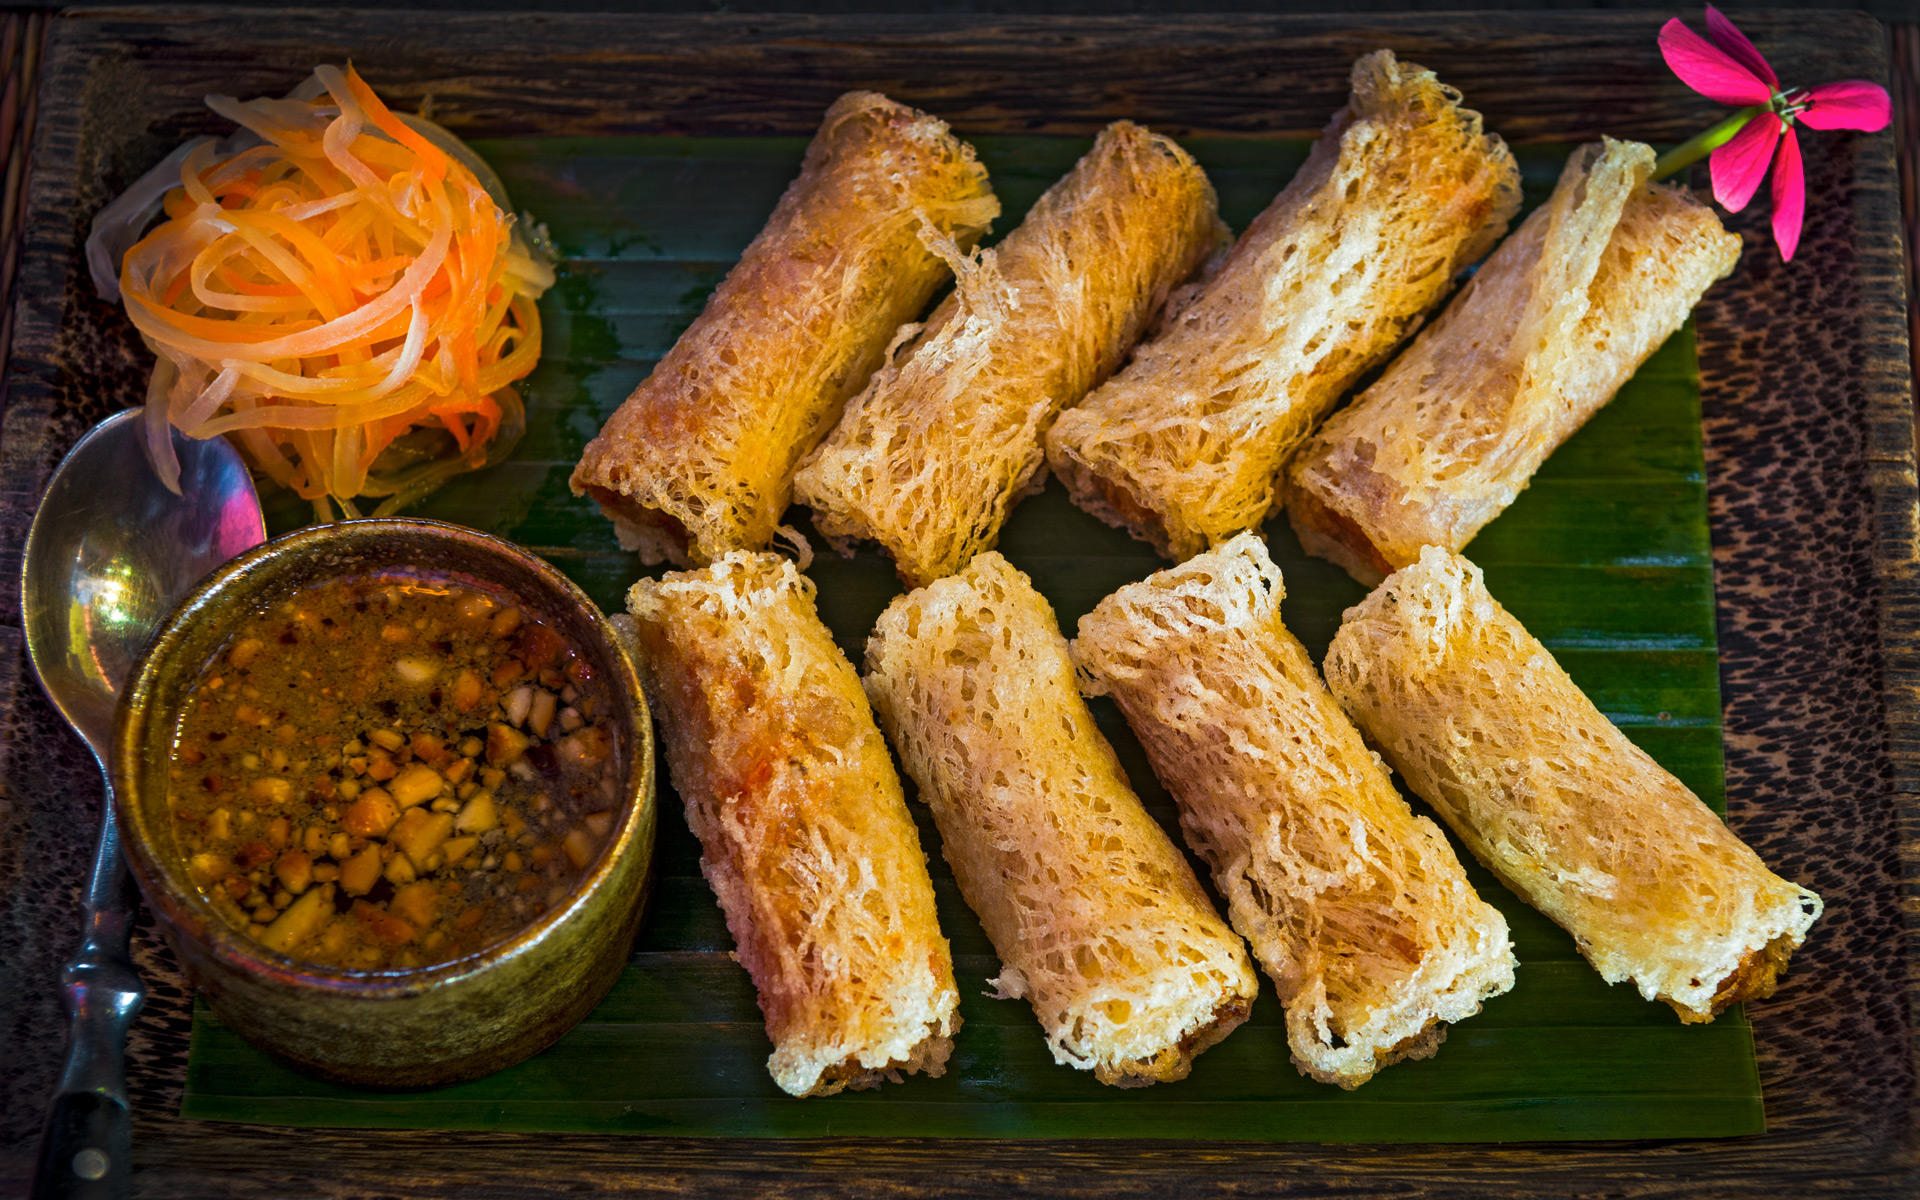 Crispy Spring Rolls. The Sugar Palm Restaurant and Bar. Authentic Cambodian food by chef Kethana with locations in Phnom Penh & Siem Reap, Cambodia.